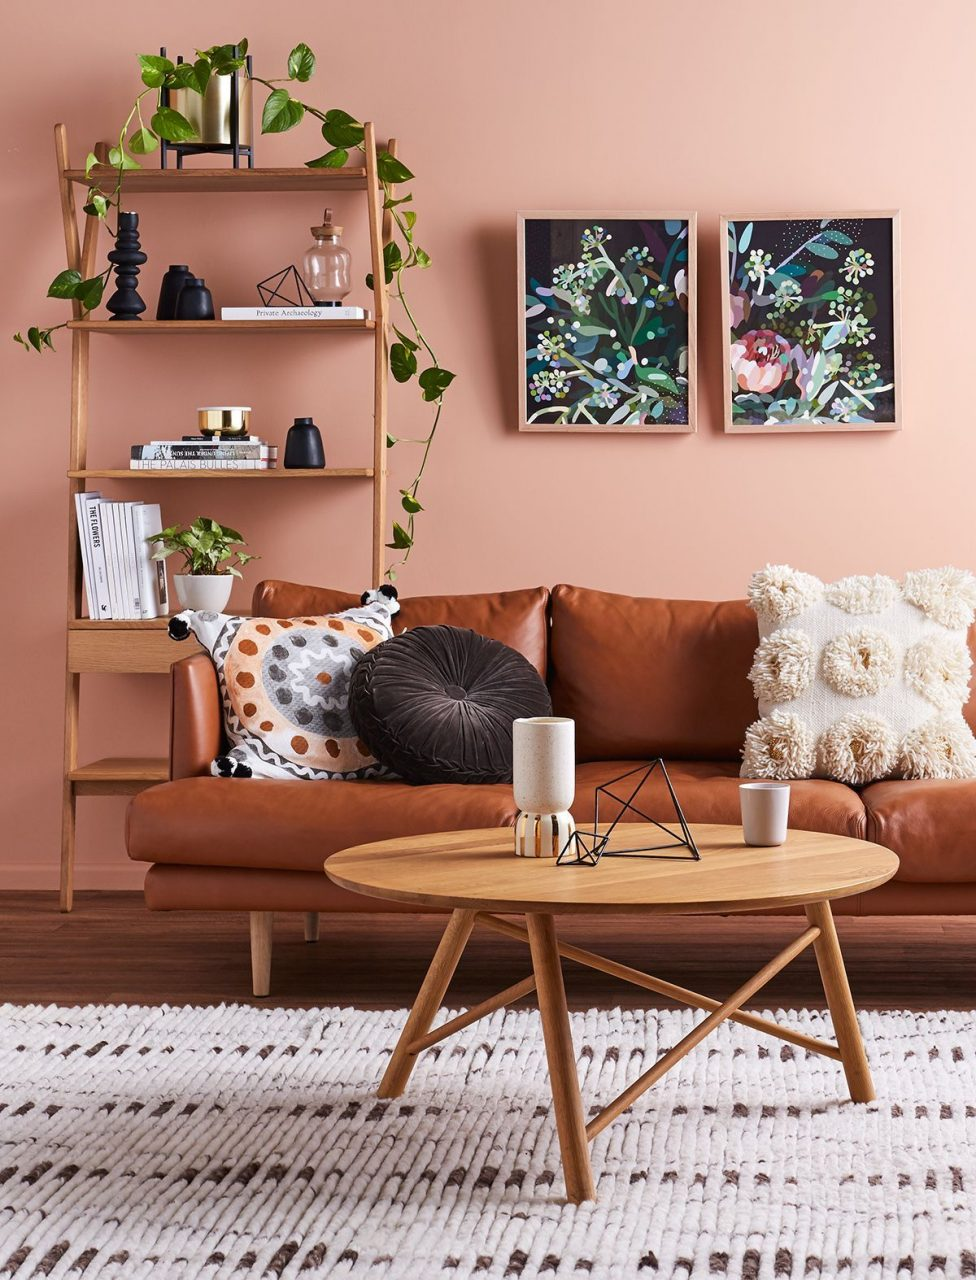 Living Room Brown Leather Sofa Couch Mid Century Pink Wall